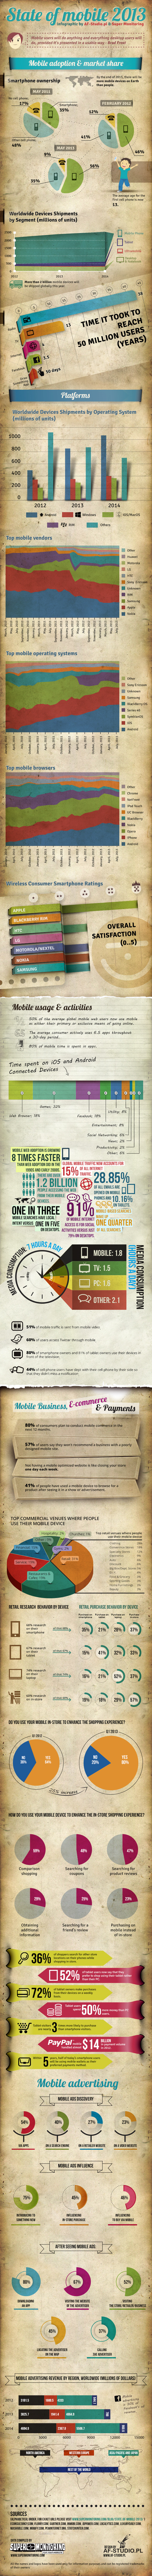 mobile trends 2014 resized 600